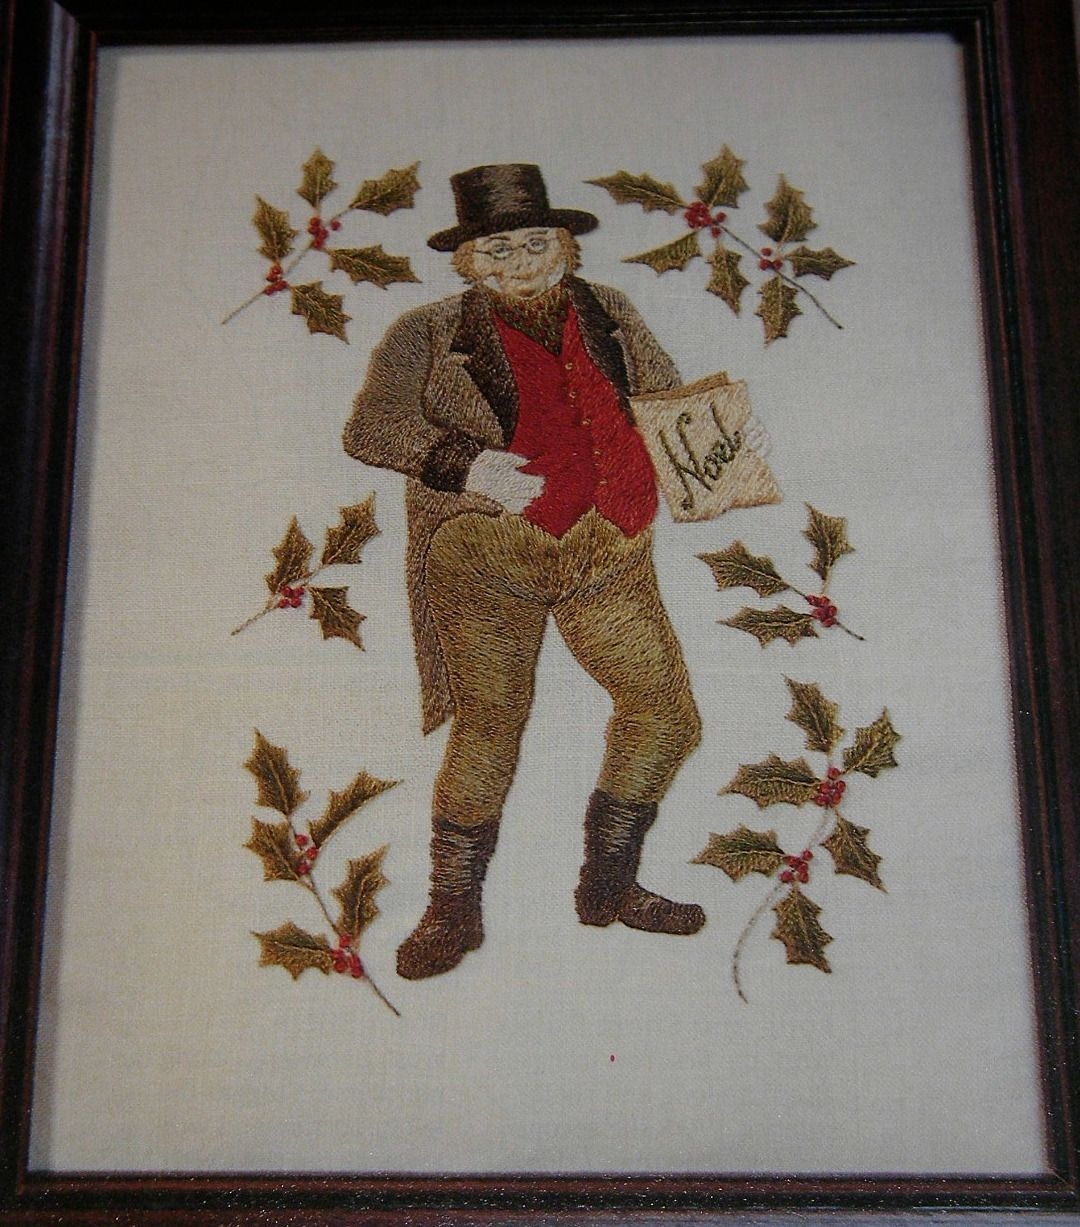 Charles Dickens Mr Pickwick Papers Hand Embroidery